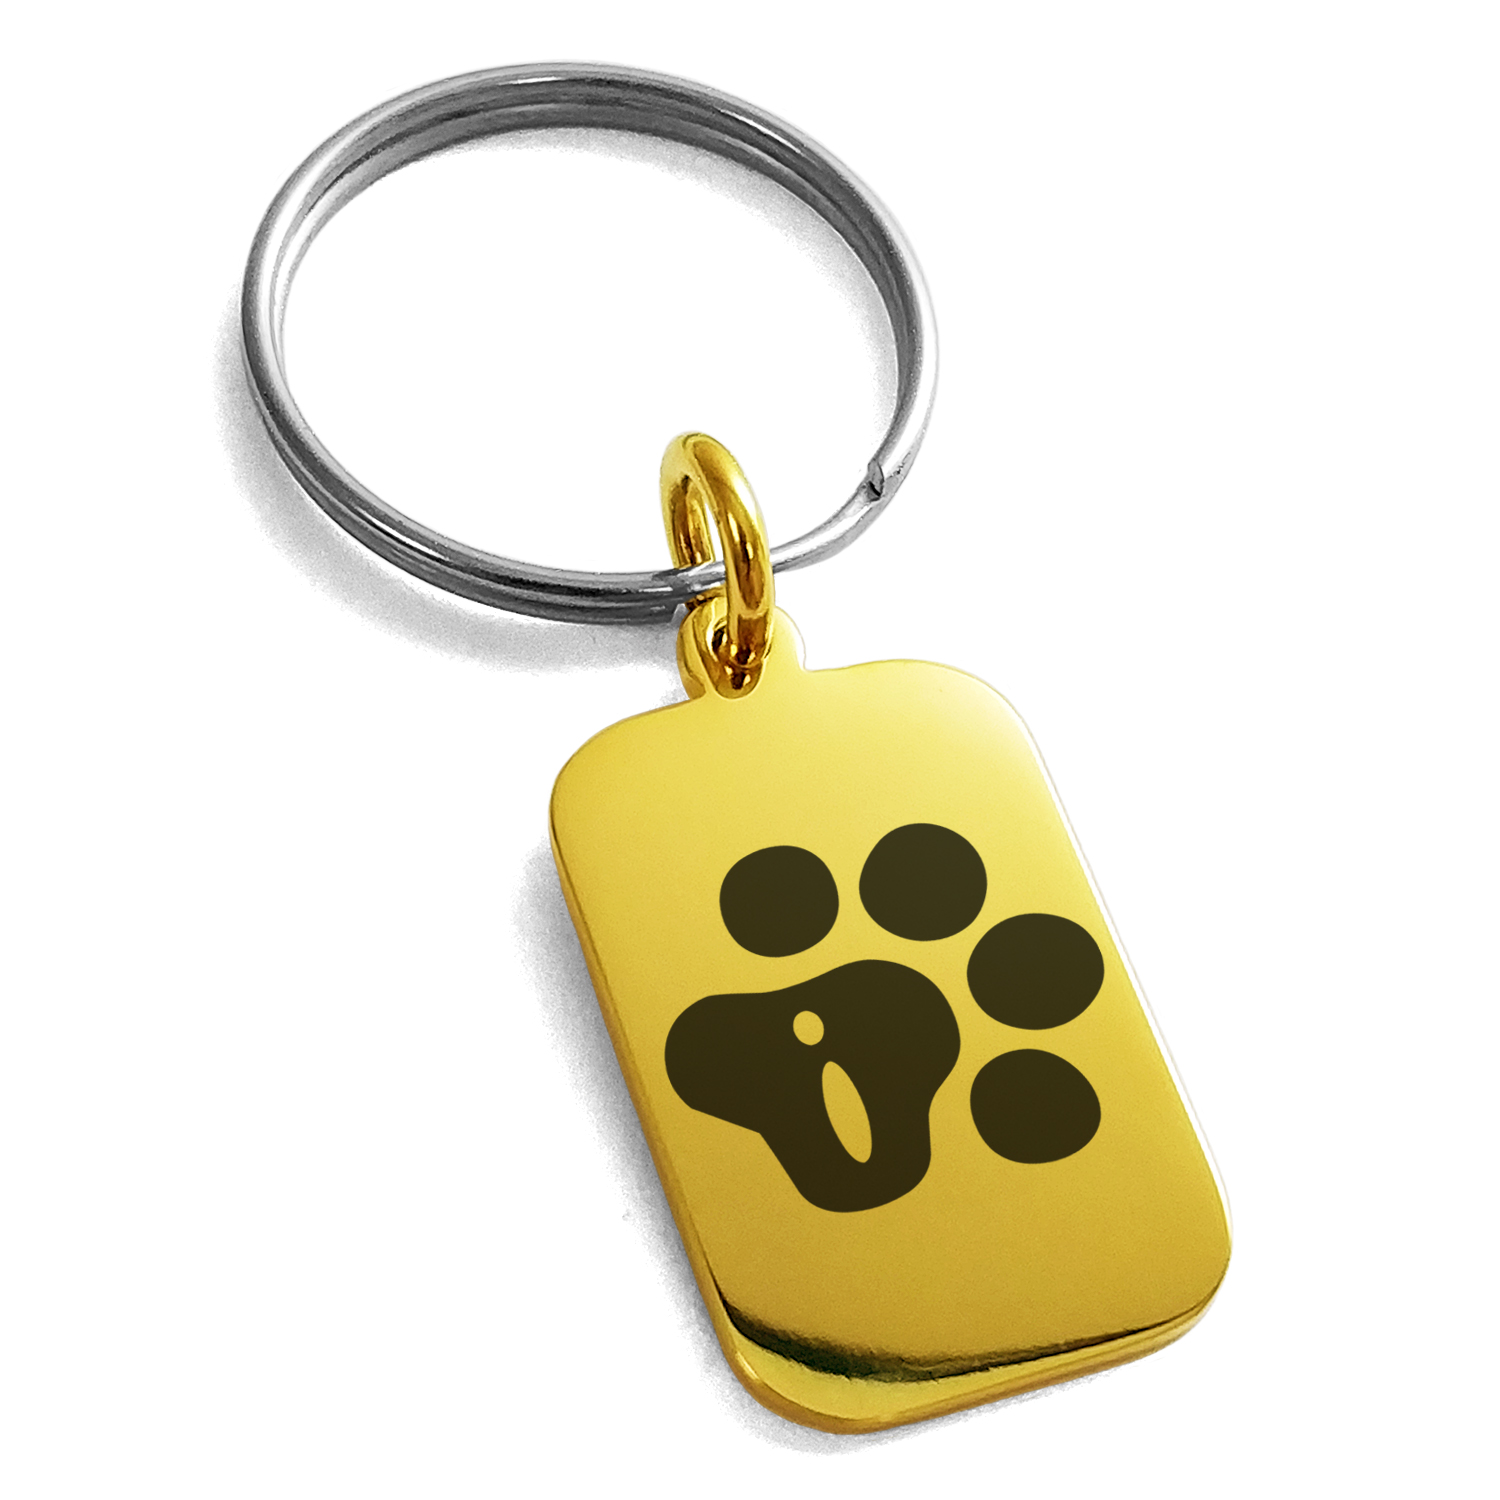 Stainless Steel Letter I Initial Cat Dog Paws Monogram Engraved Small Rectangle Dog Tag Charm Keychain Keyring